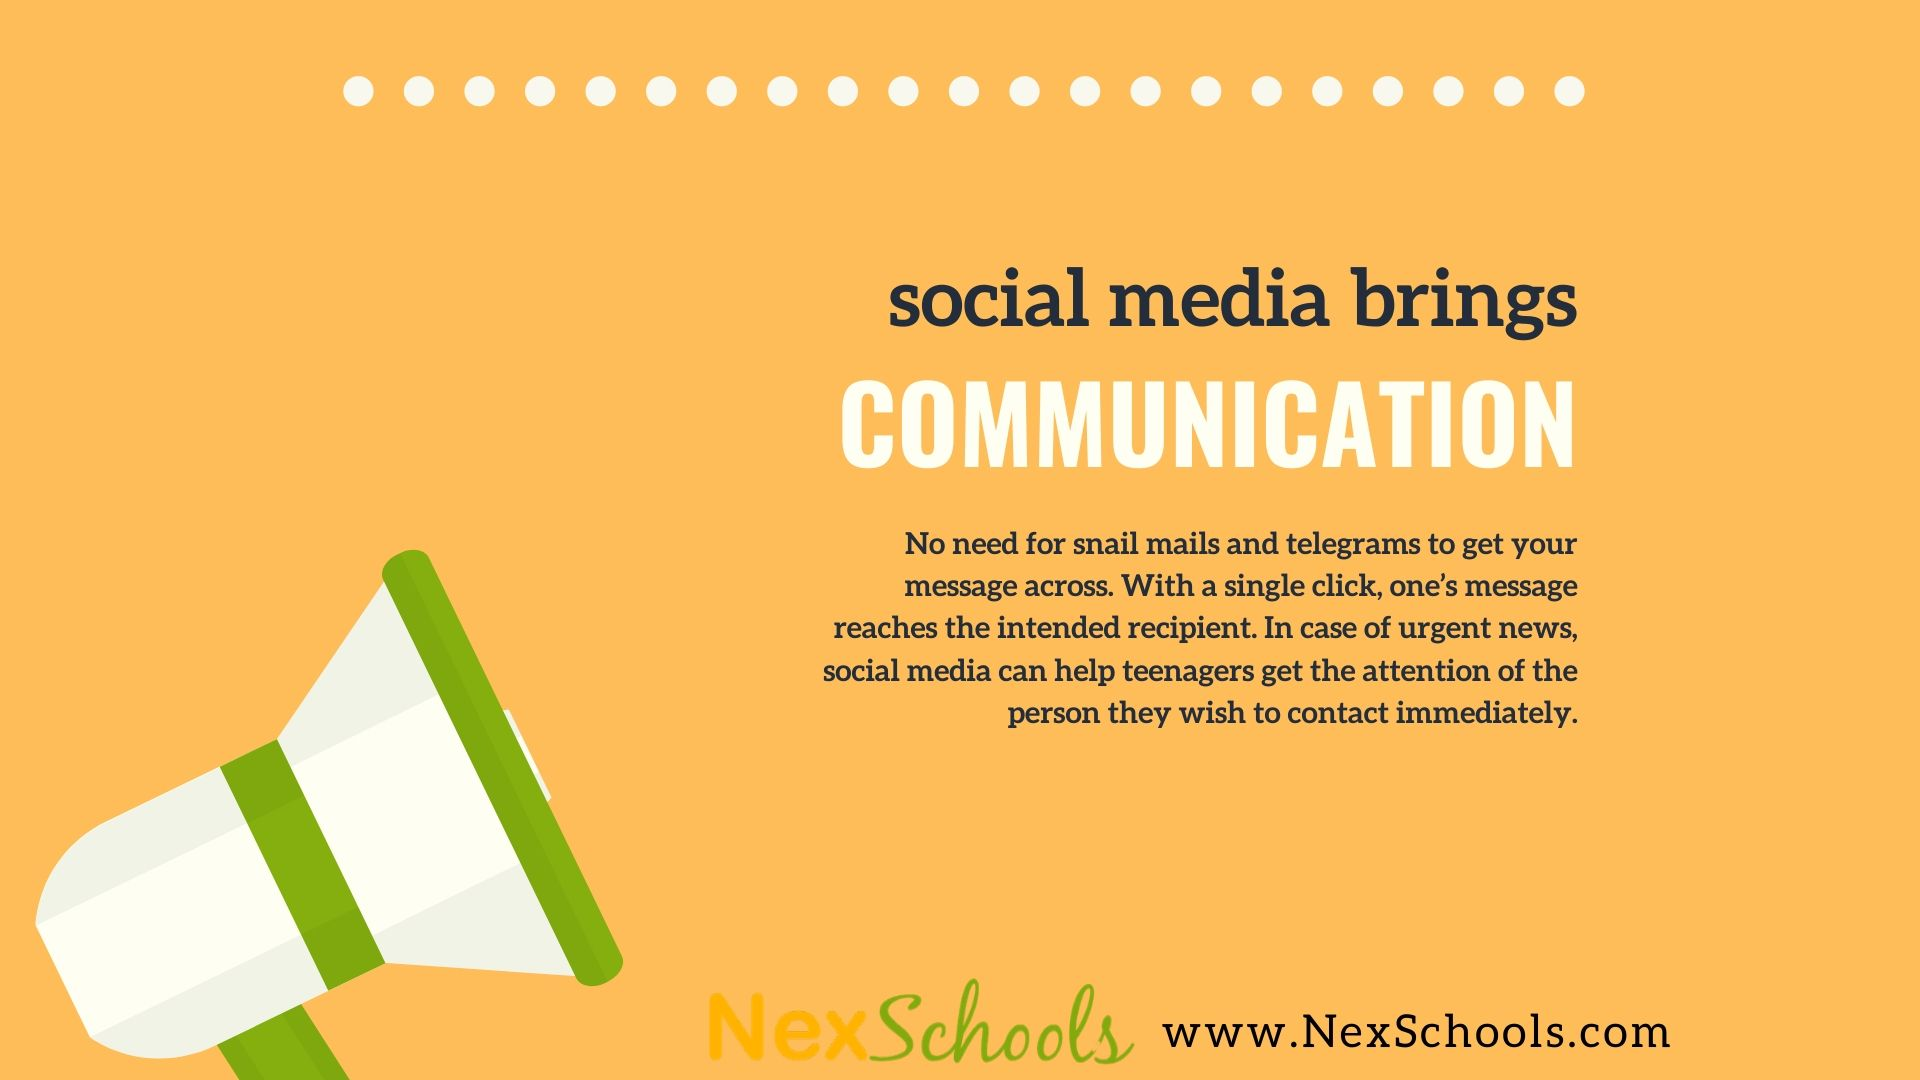 Positive Effects of Social Media on Teens, How To Use Social Media Meaningfully, A Guide by NexSchools.com for  Social Media Awareness for teens Schools, Download the guide, Social Media for Positive Communication